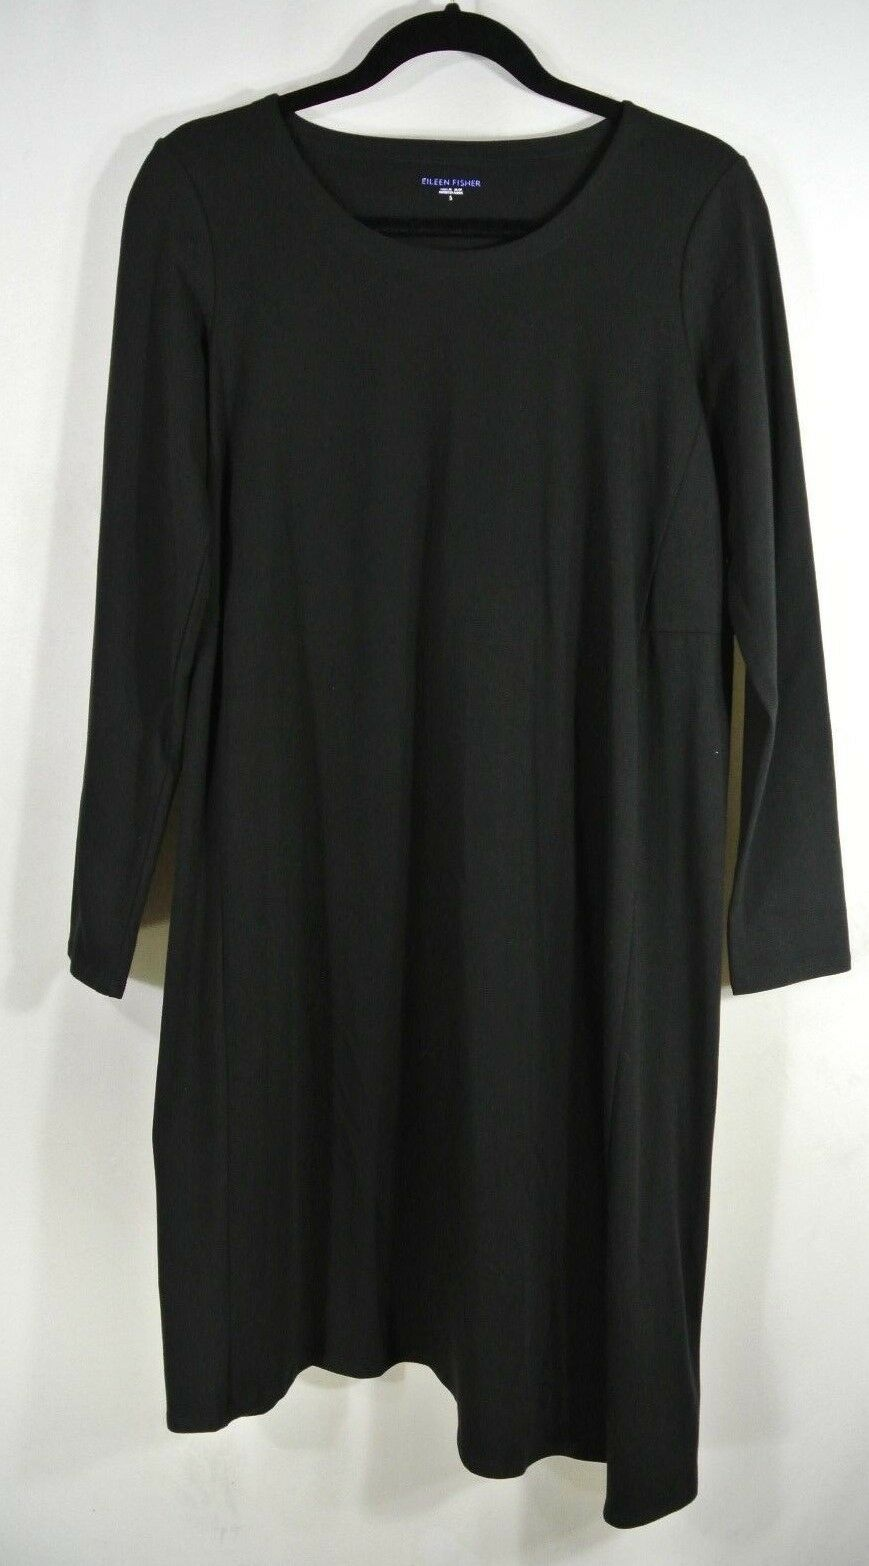 NEW EILEEN FISHER Organic Cotton Jersey Asymmetrical Dress in schwarz - Größe S